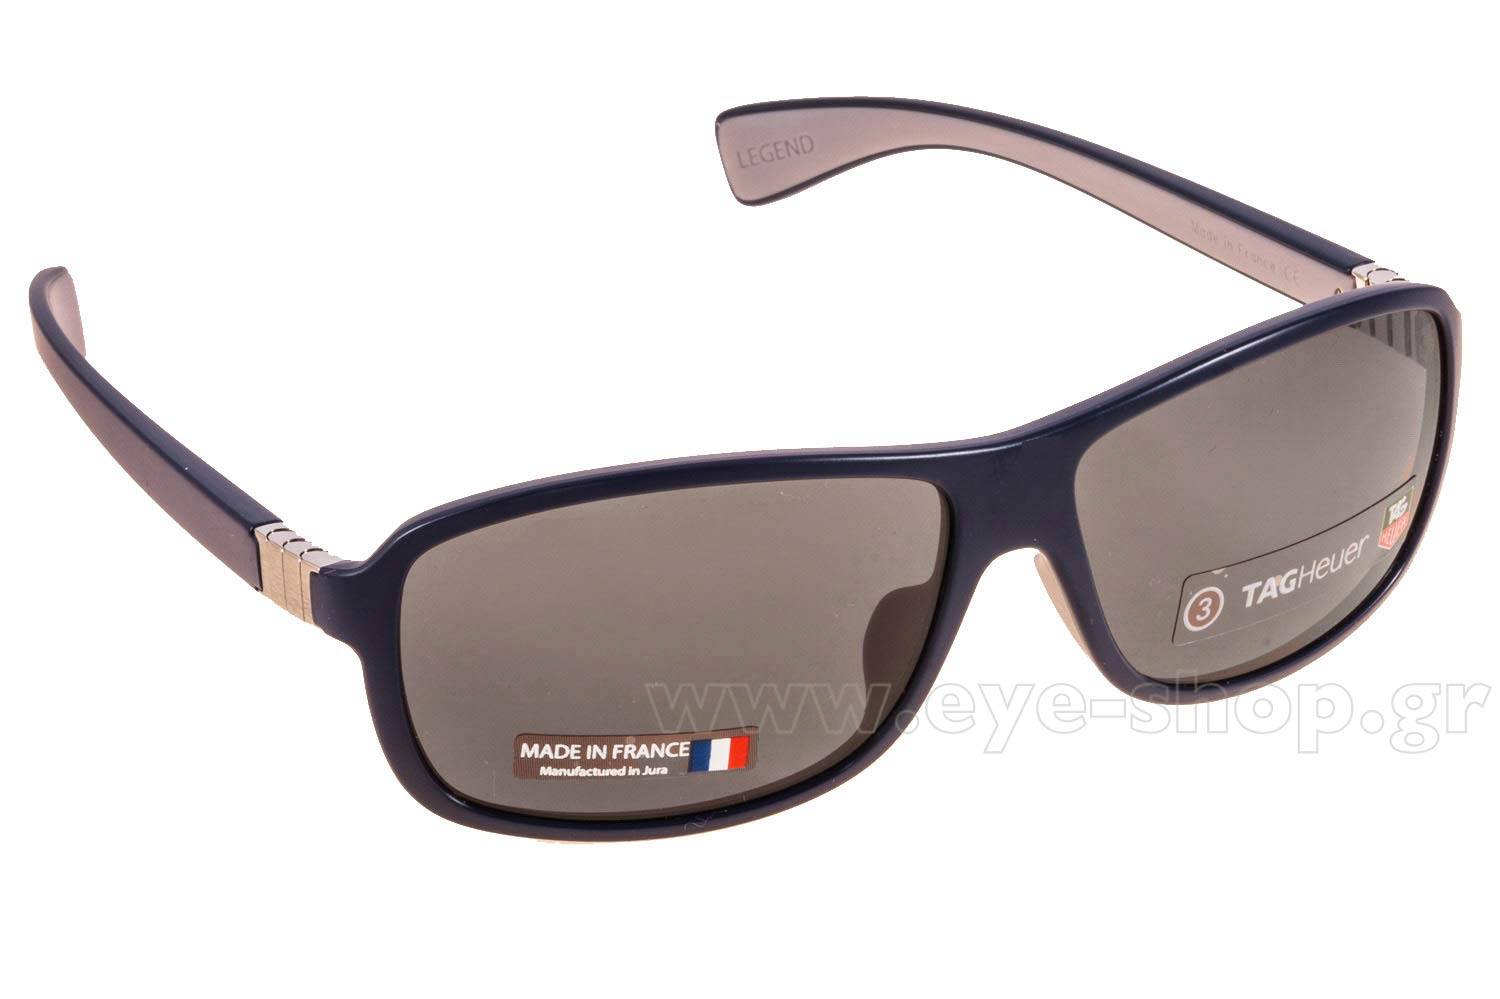 SUNGLASSES TAG HEUER 9302 104 63Ø Men 2017